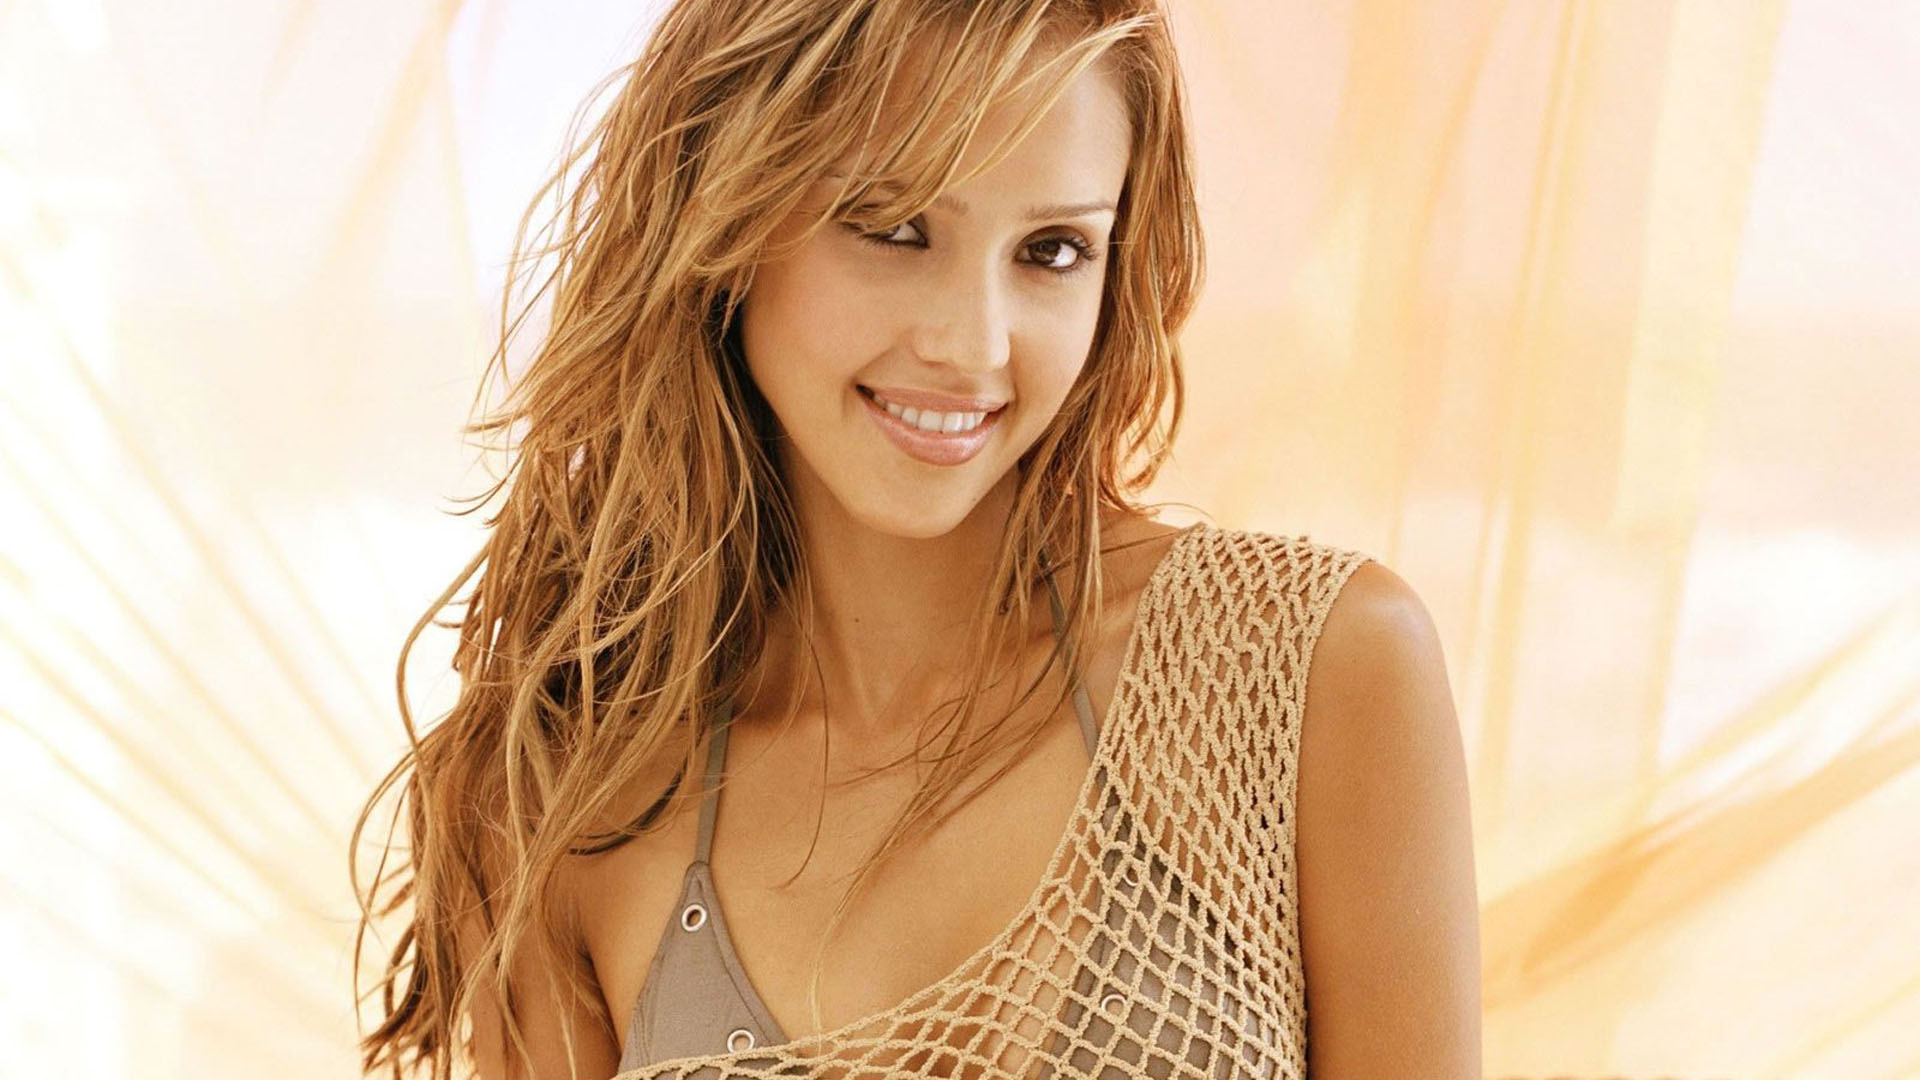 Jessica alba wallpapers high resolution and quality download - High resolution wallpaper celebrity ...